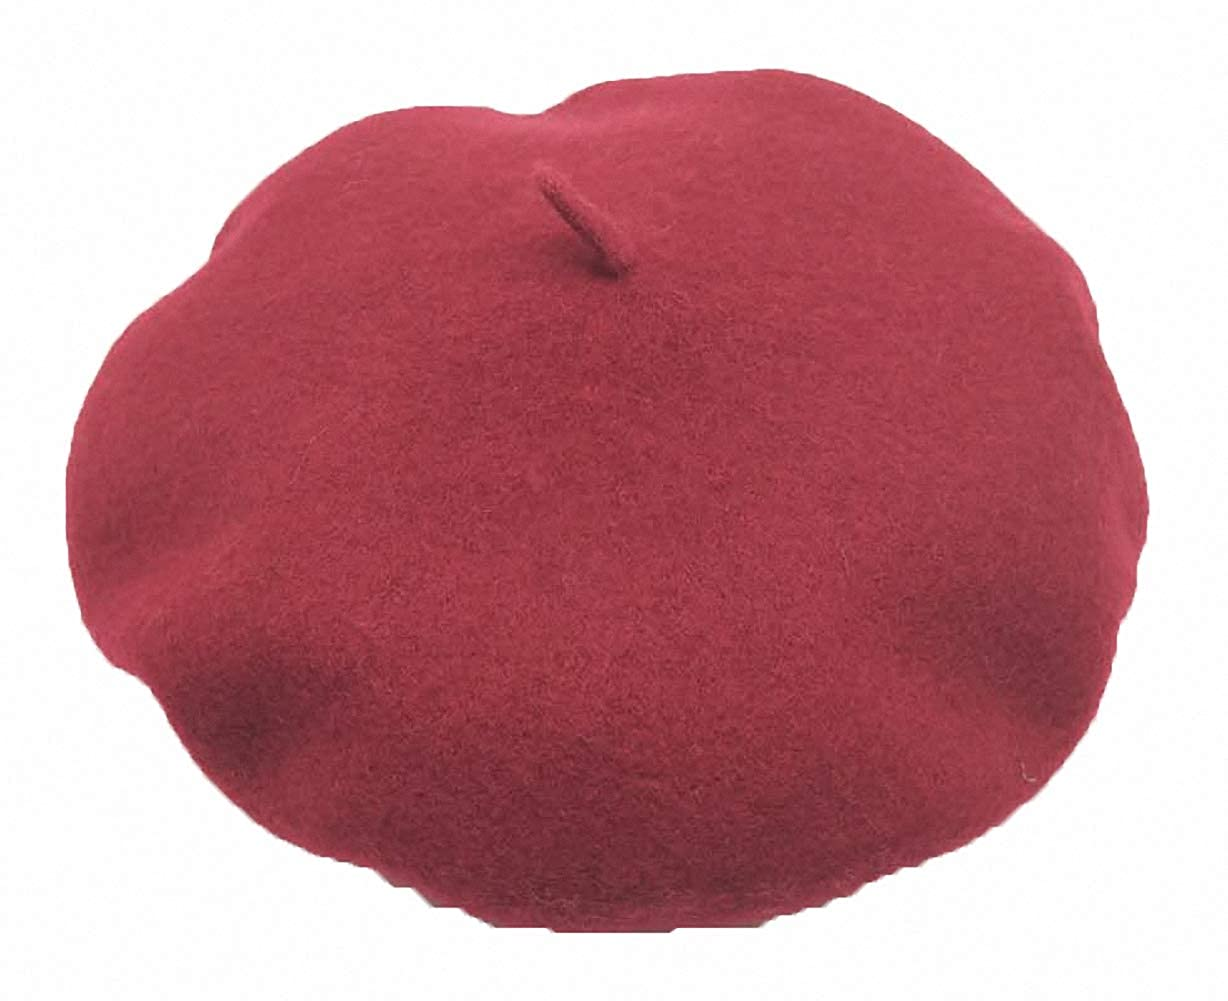 Ulalaza Wool Berets Hat for Women Casual Solid Color Spring Winter French Style